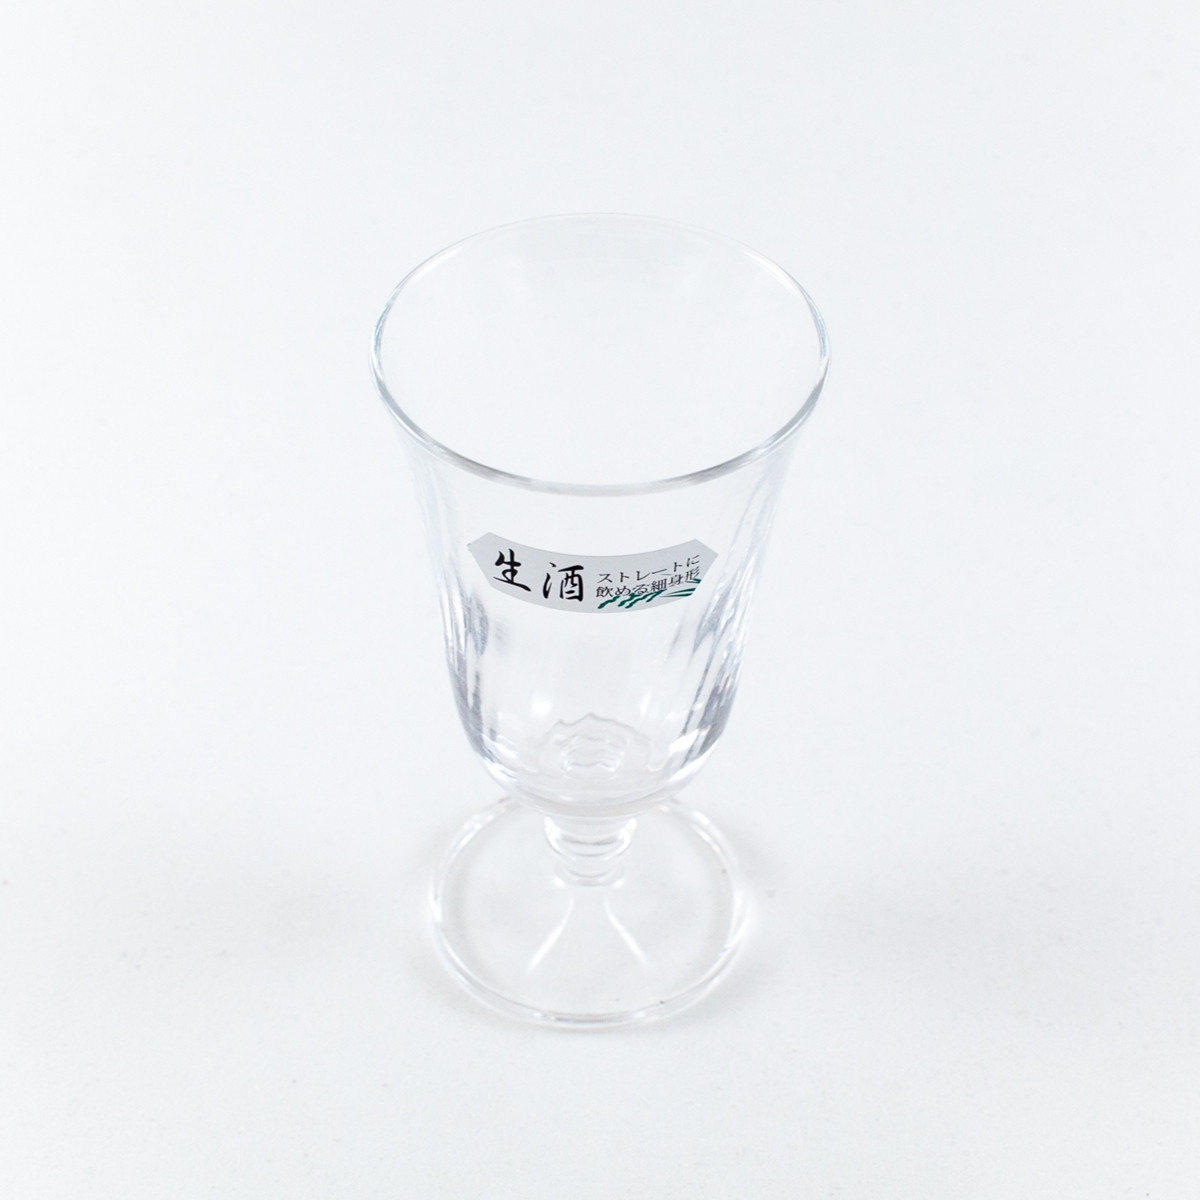 Namazake Glass Sake Cup 3.6 oz